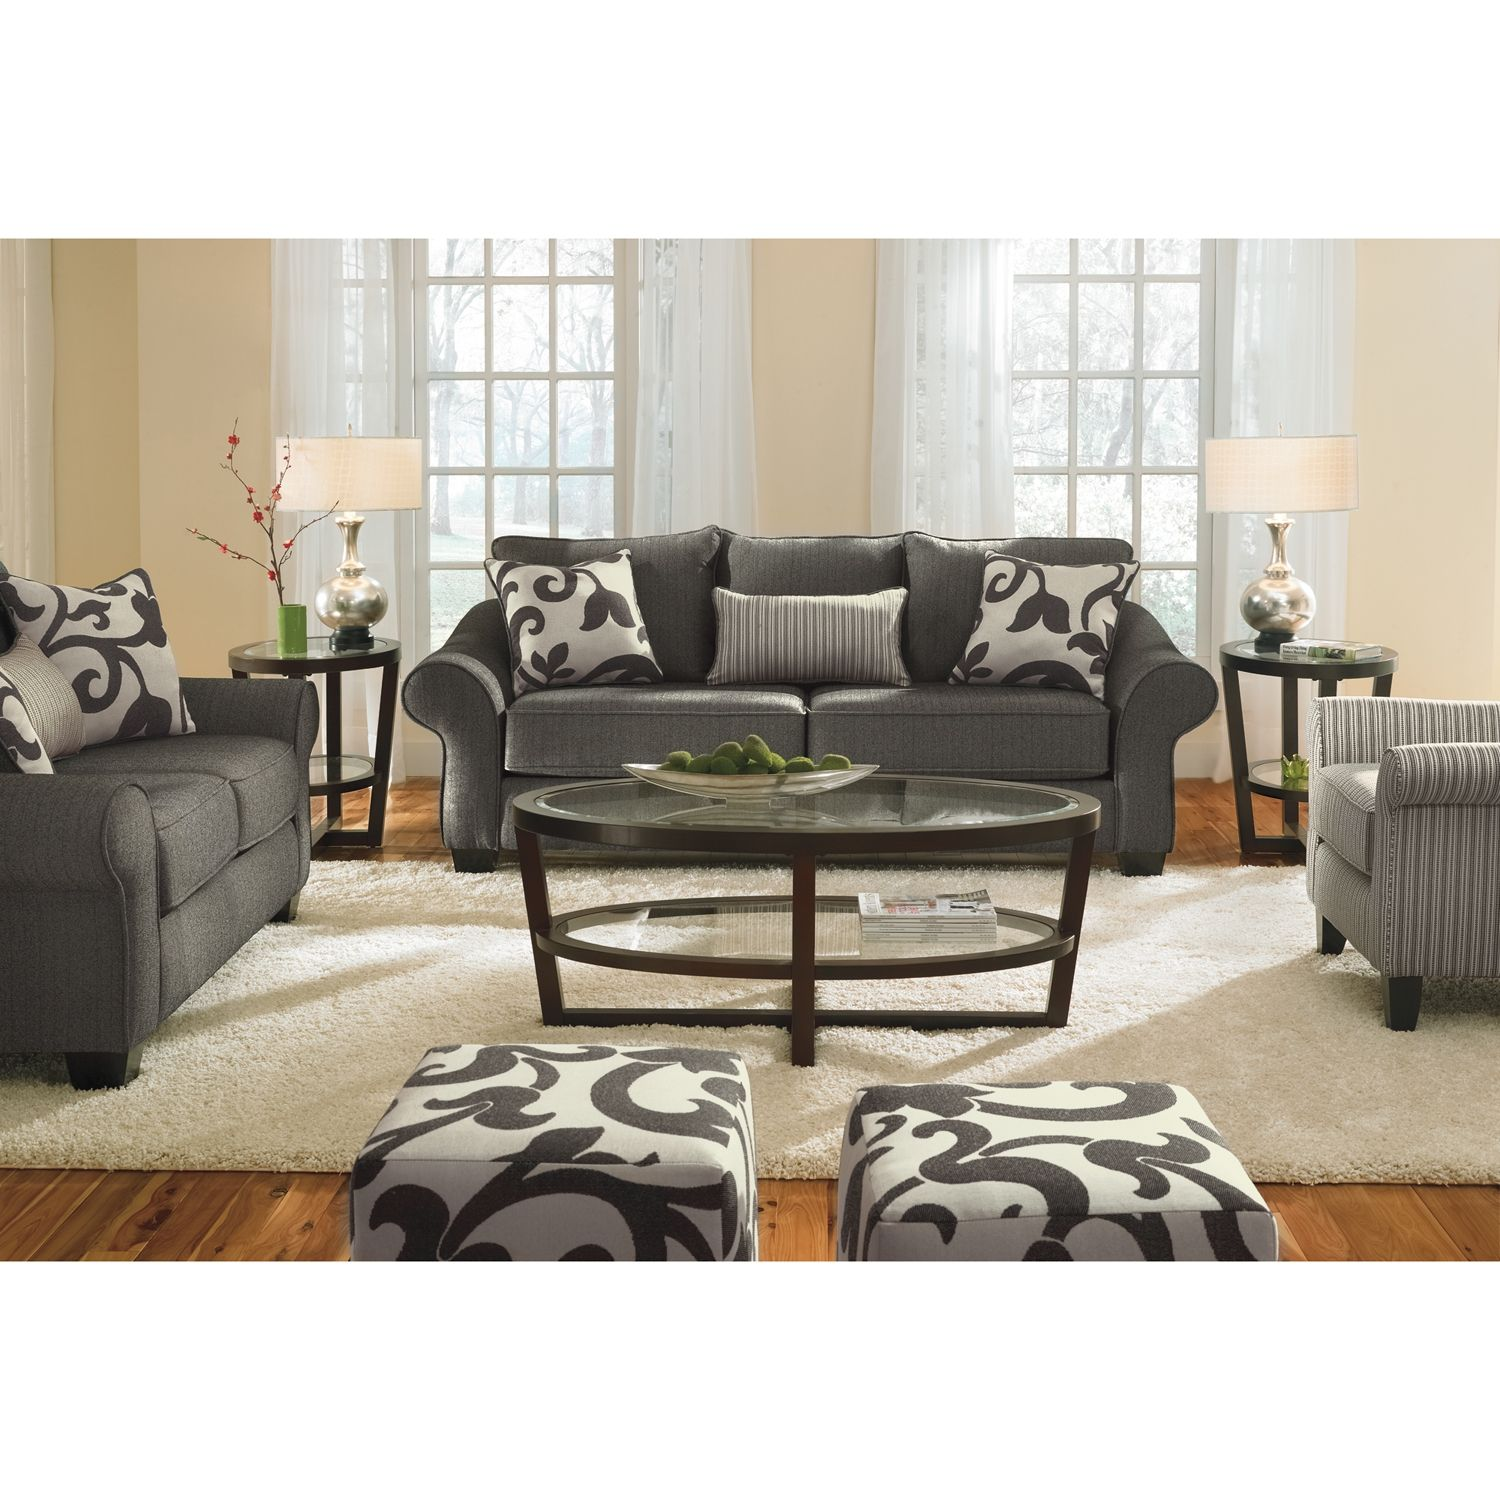 Value City Dining Room Tables Radiance Pewter 3 Pc Living Room Package Value City Furniture